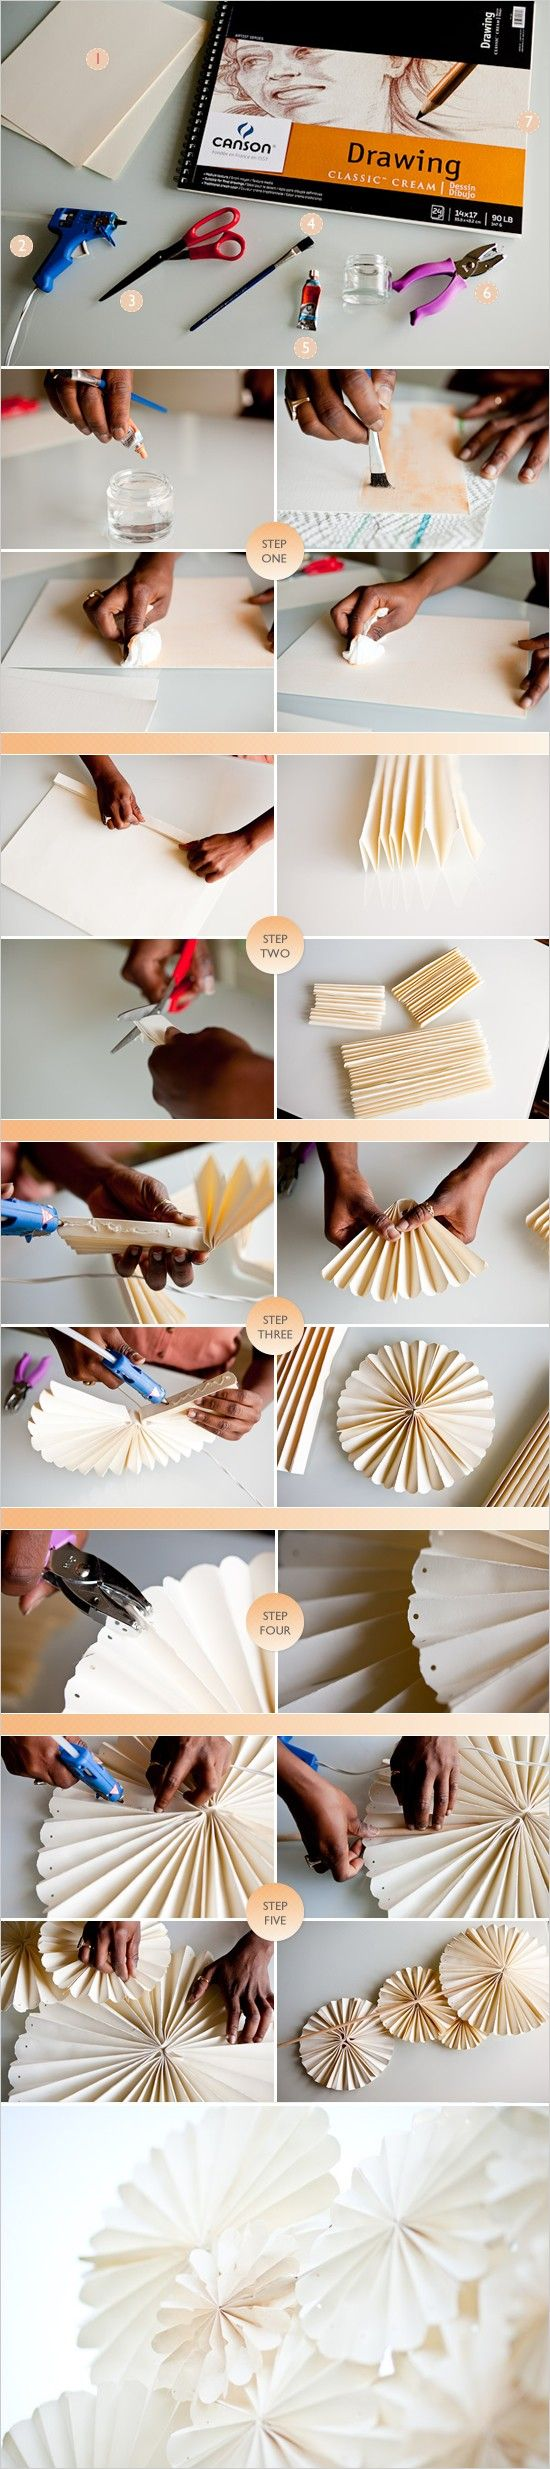 DIY pinwheels how to. Paper craft party decorations.